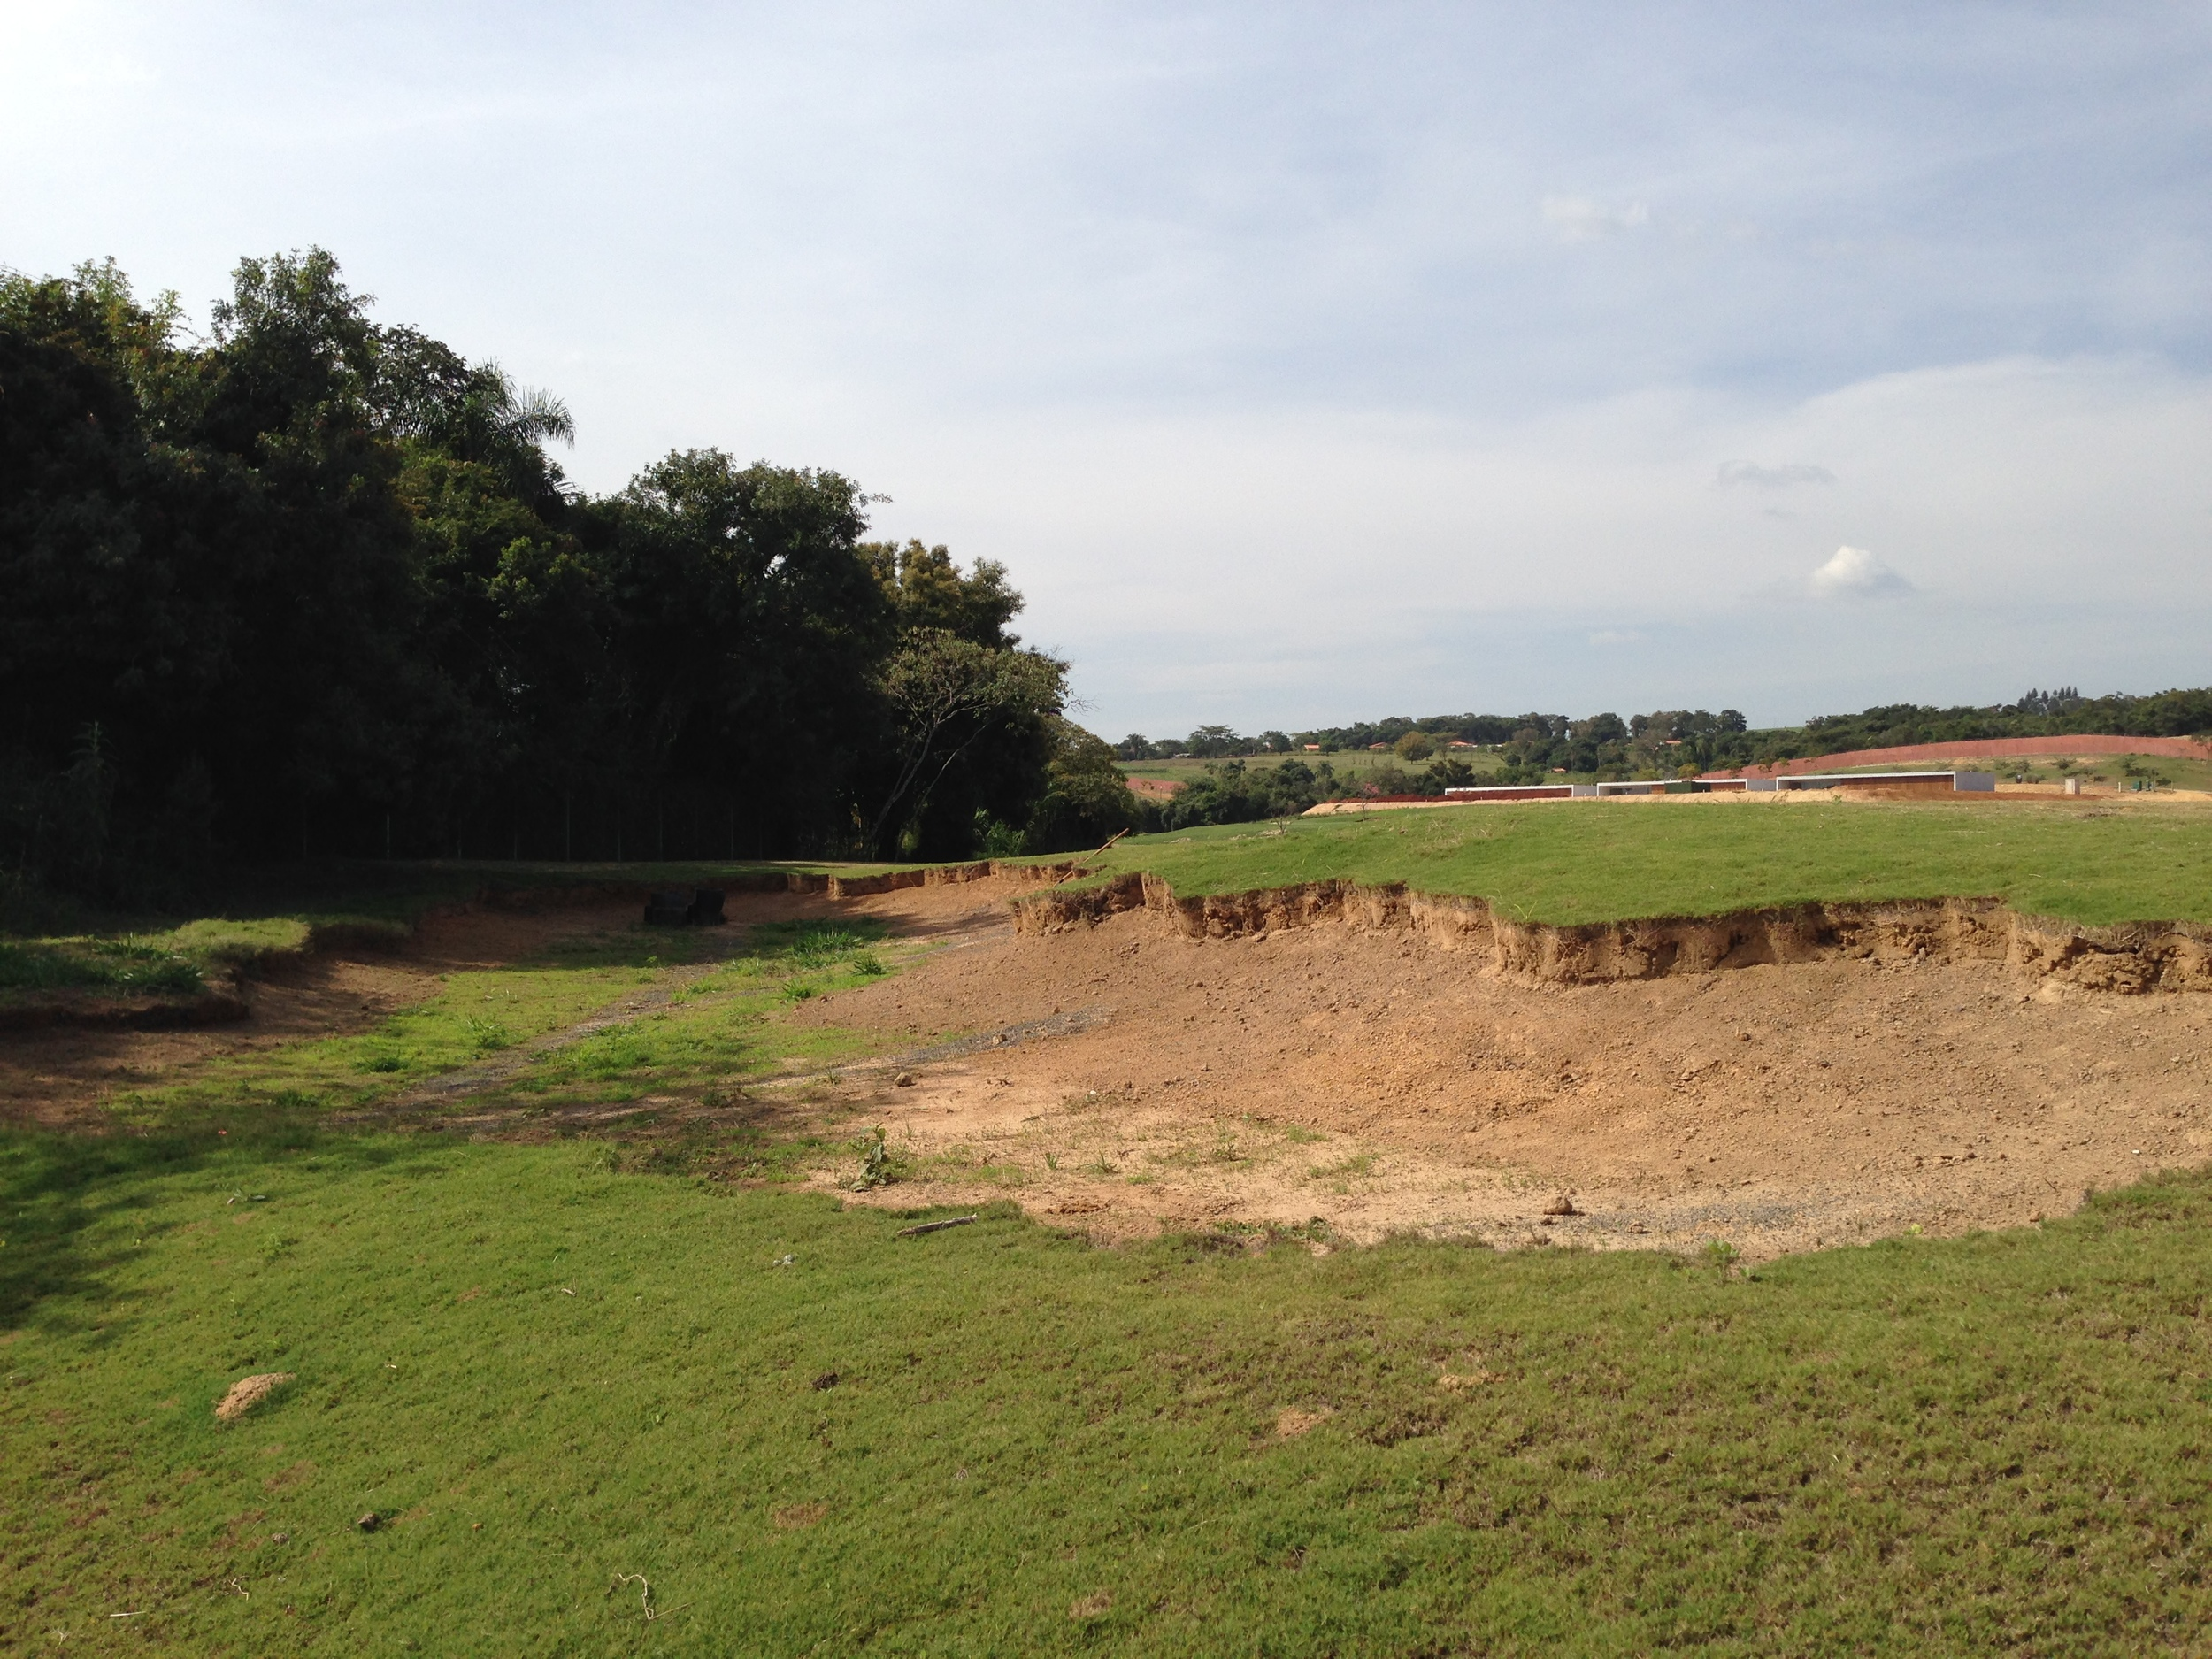 Hole 8 fairway bunker just after liner pulled and before any work done to it.